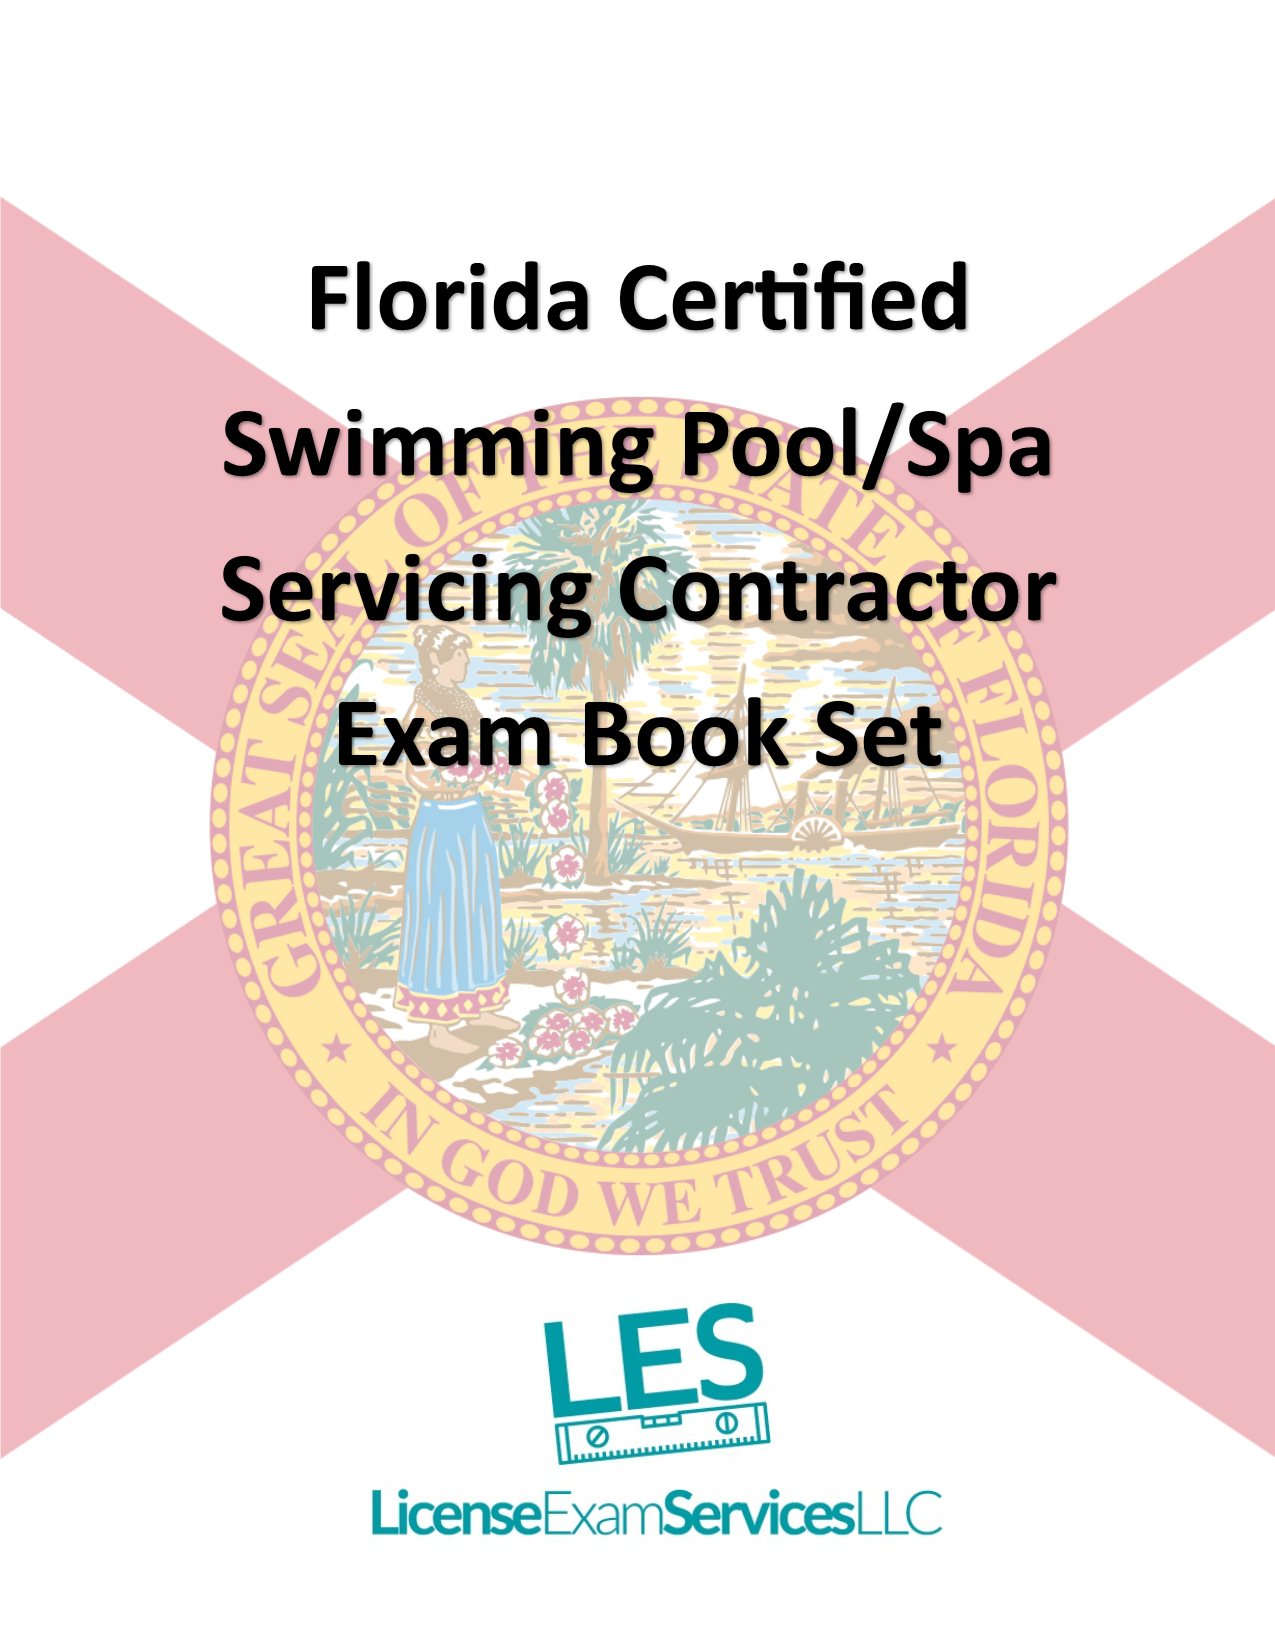 Florida Certified Swimming Pool Spa Servicing Contractor